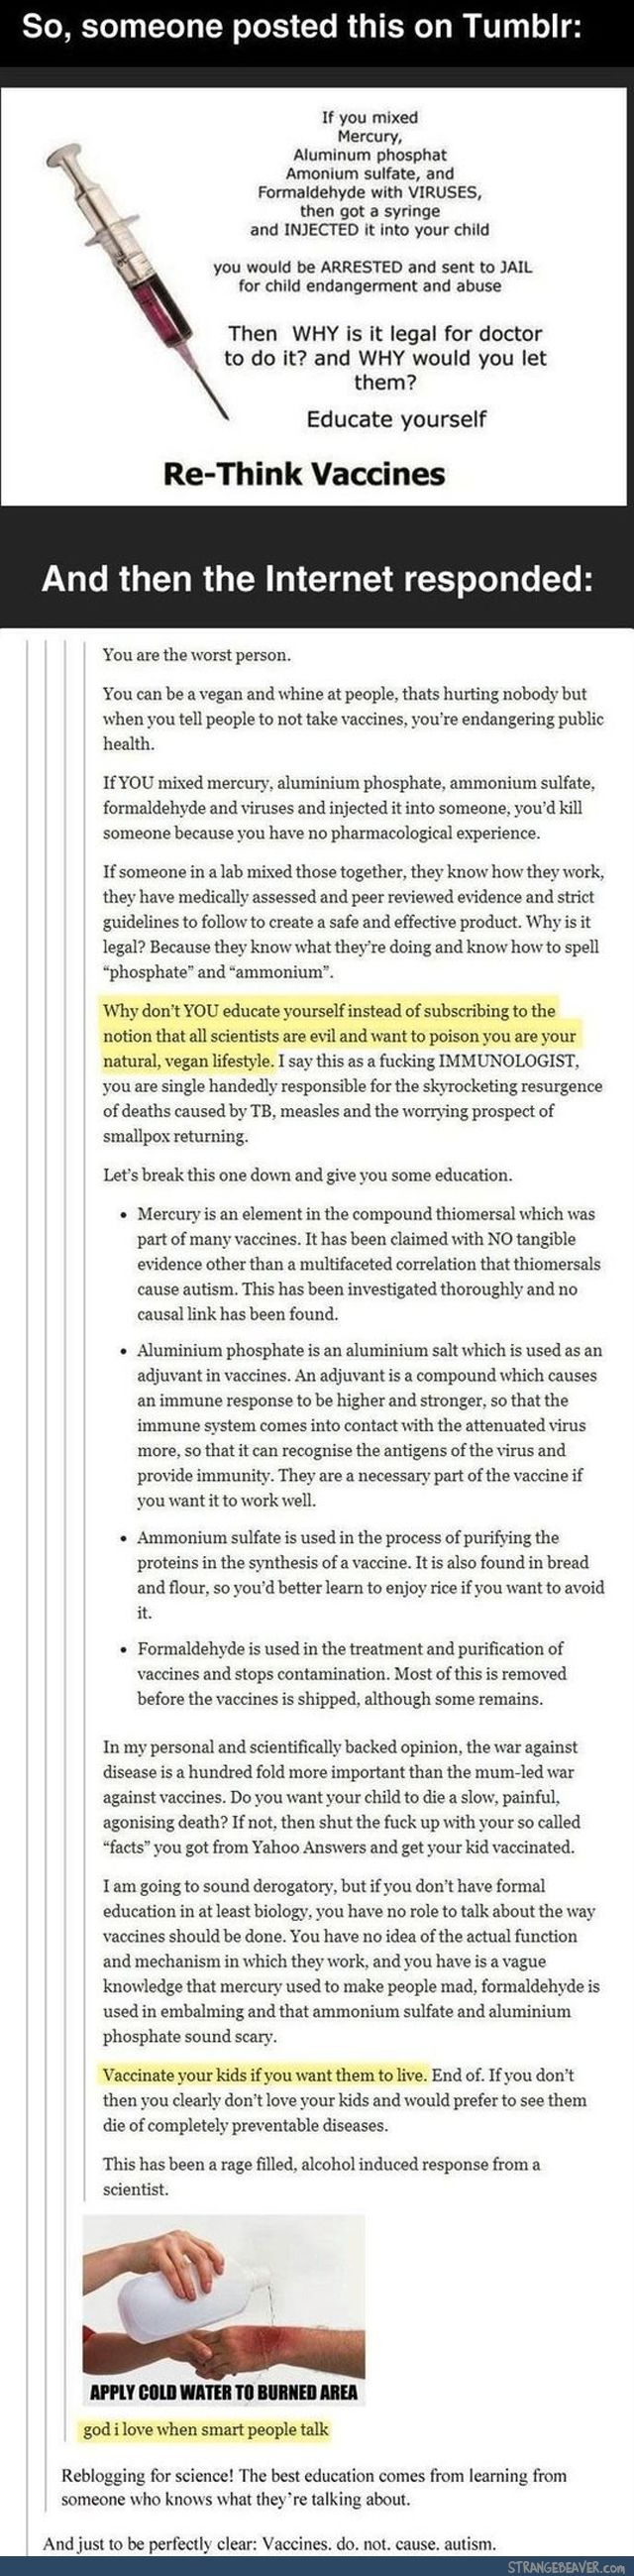 Funny tumblr post. I have a new favorite person. The scientist who told that person off is now my hero.